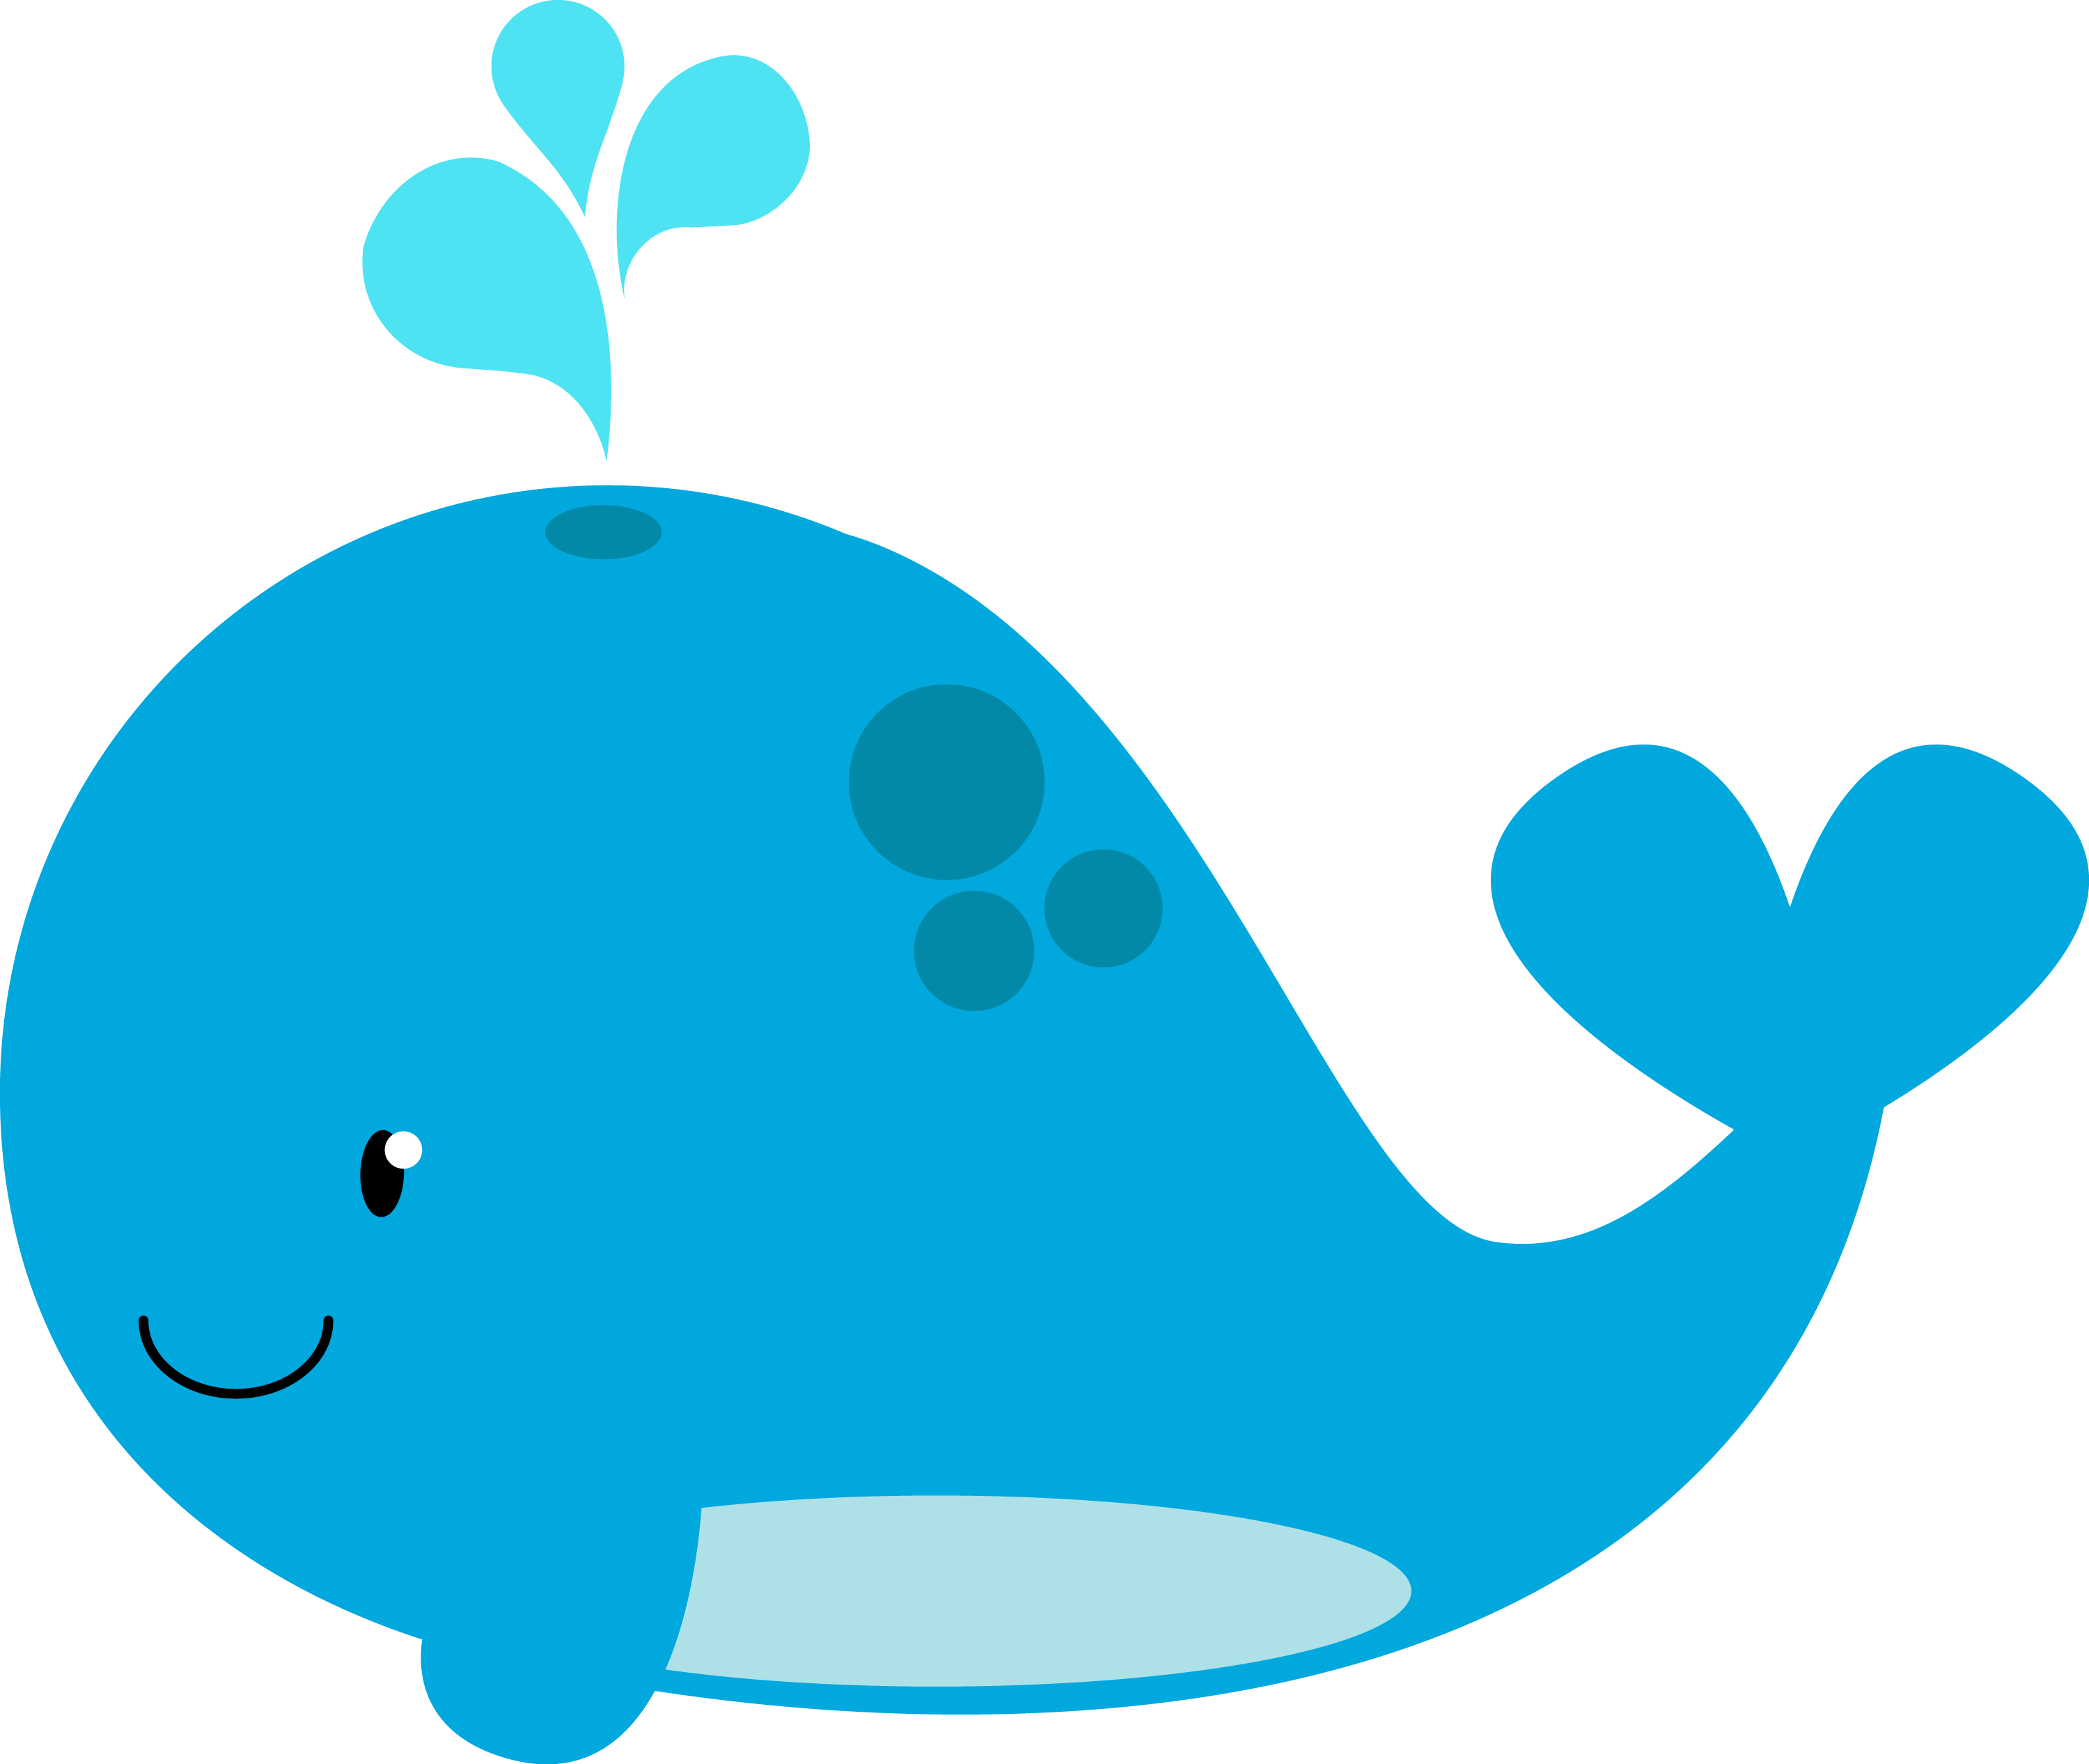 Fundo do Mar - whale.png - Minus | Png | Pinterest | Fundo ...